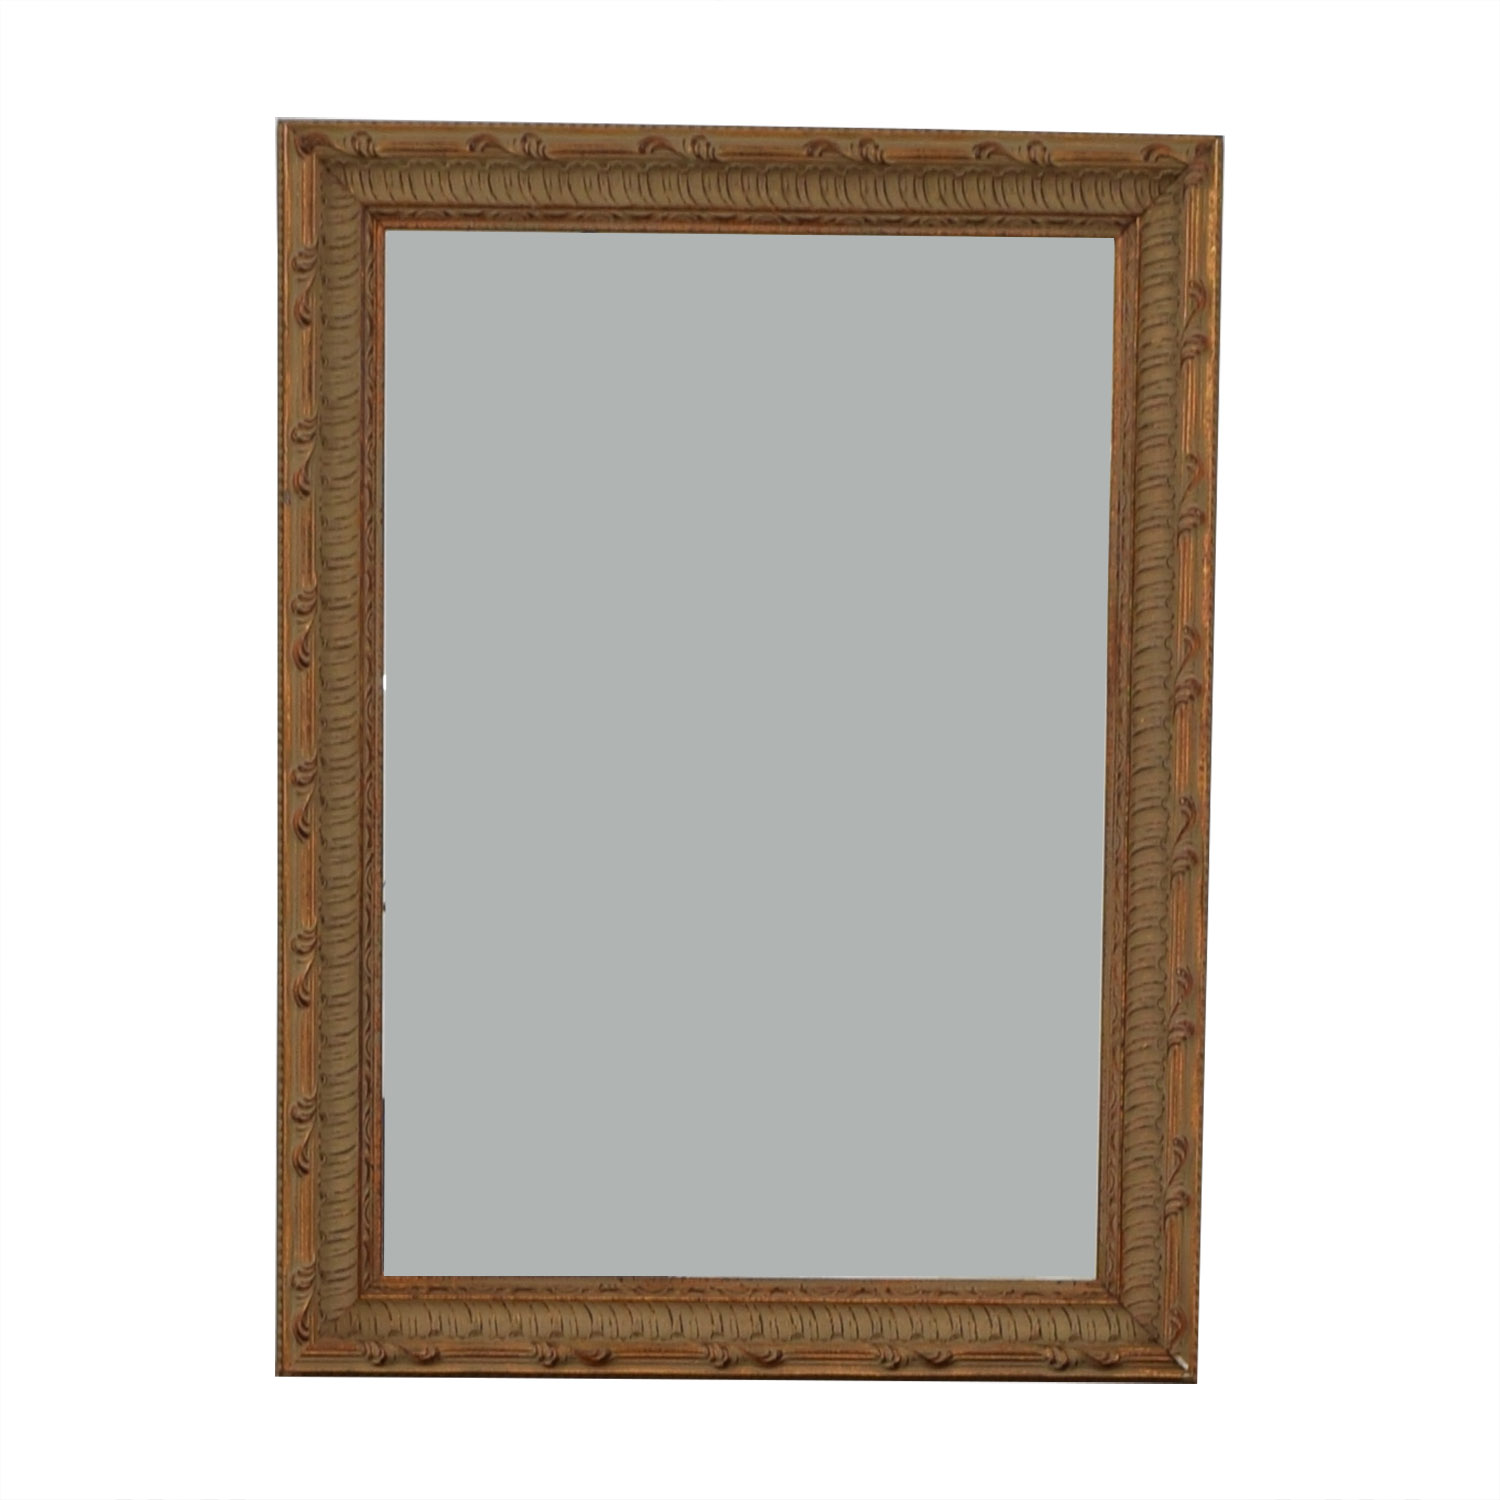 buy Ethan Allen Worn Red and Beige Mirror Ethan Allen Mirrors